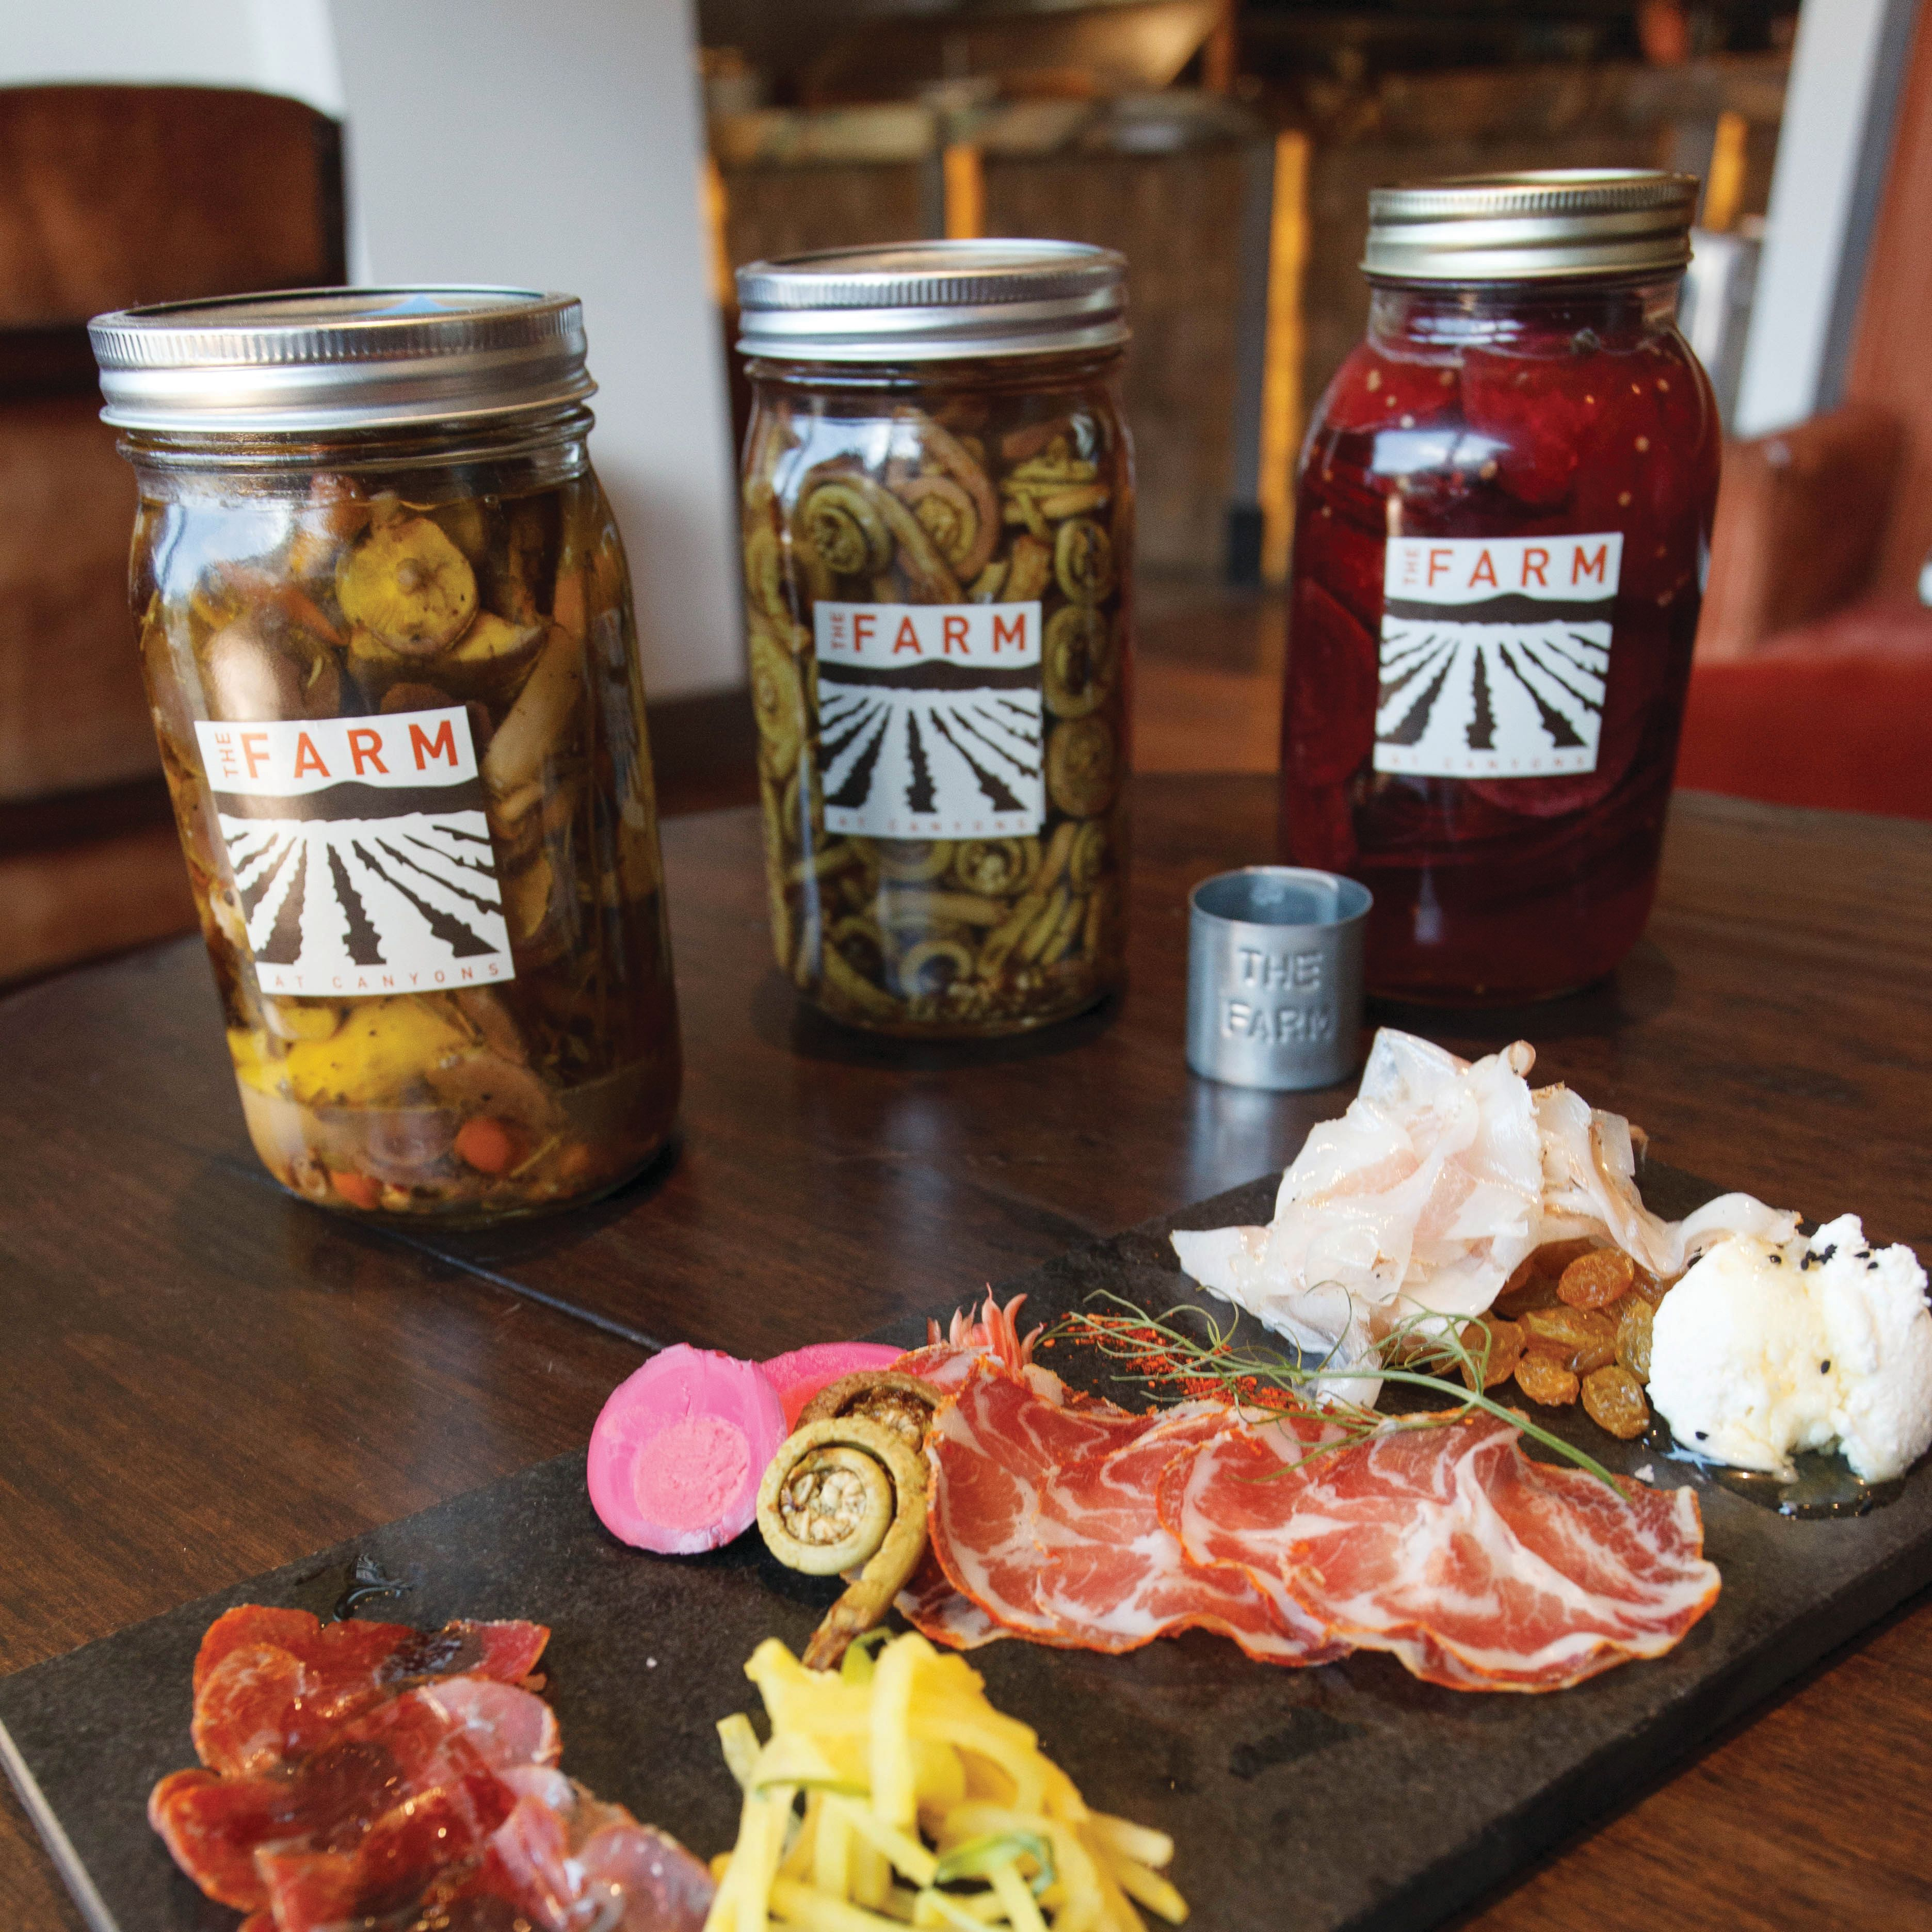 Pcwi 14 dining the farm pickles charcuterie hqry0e